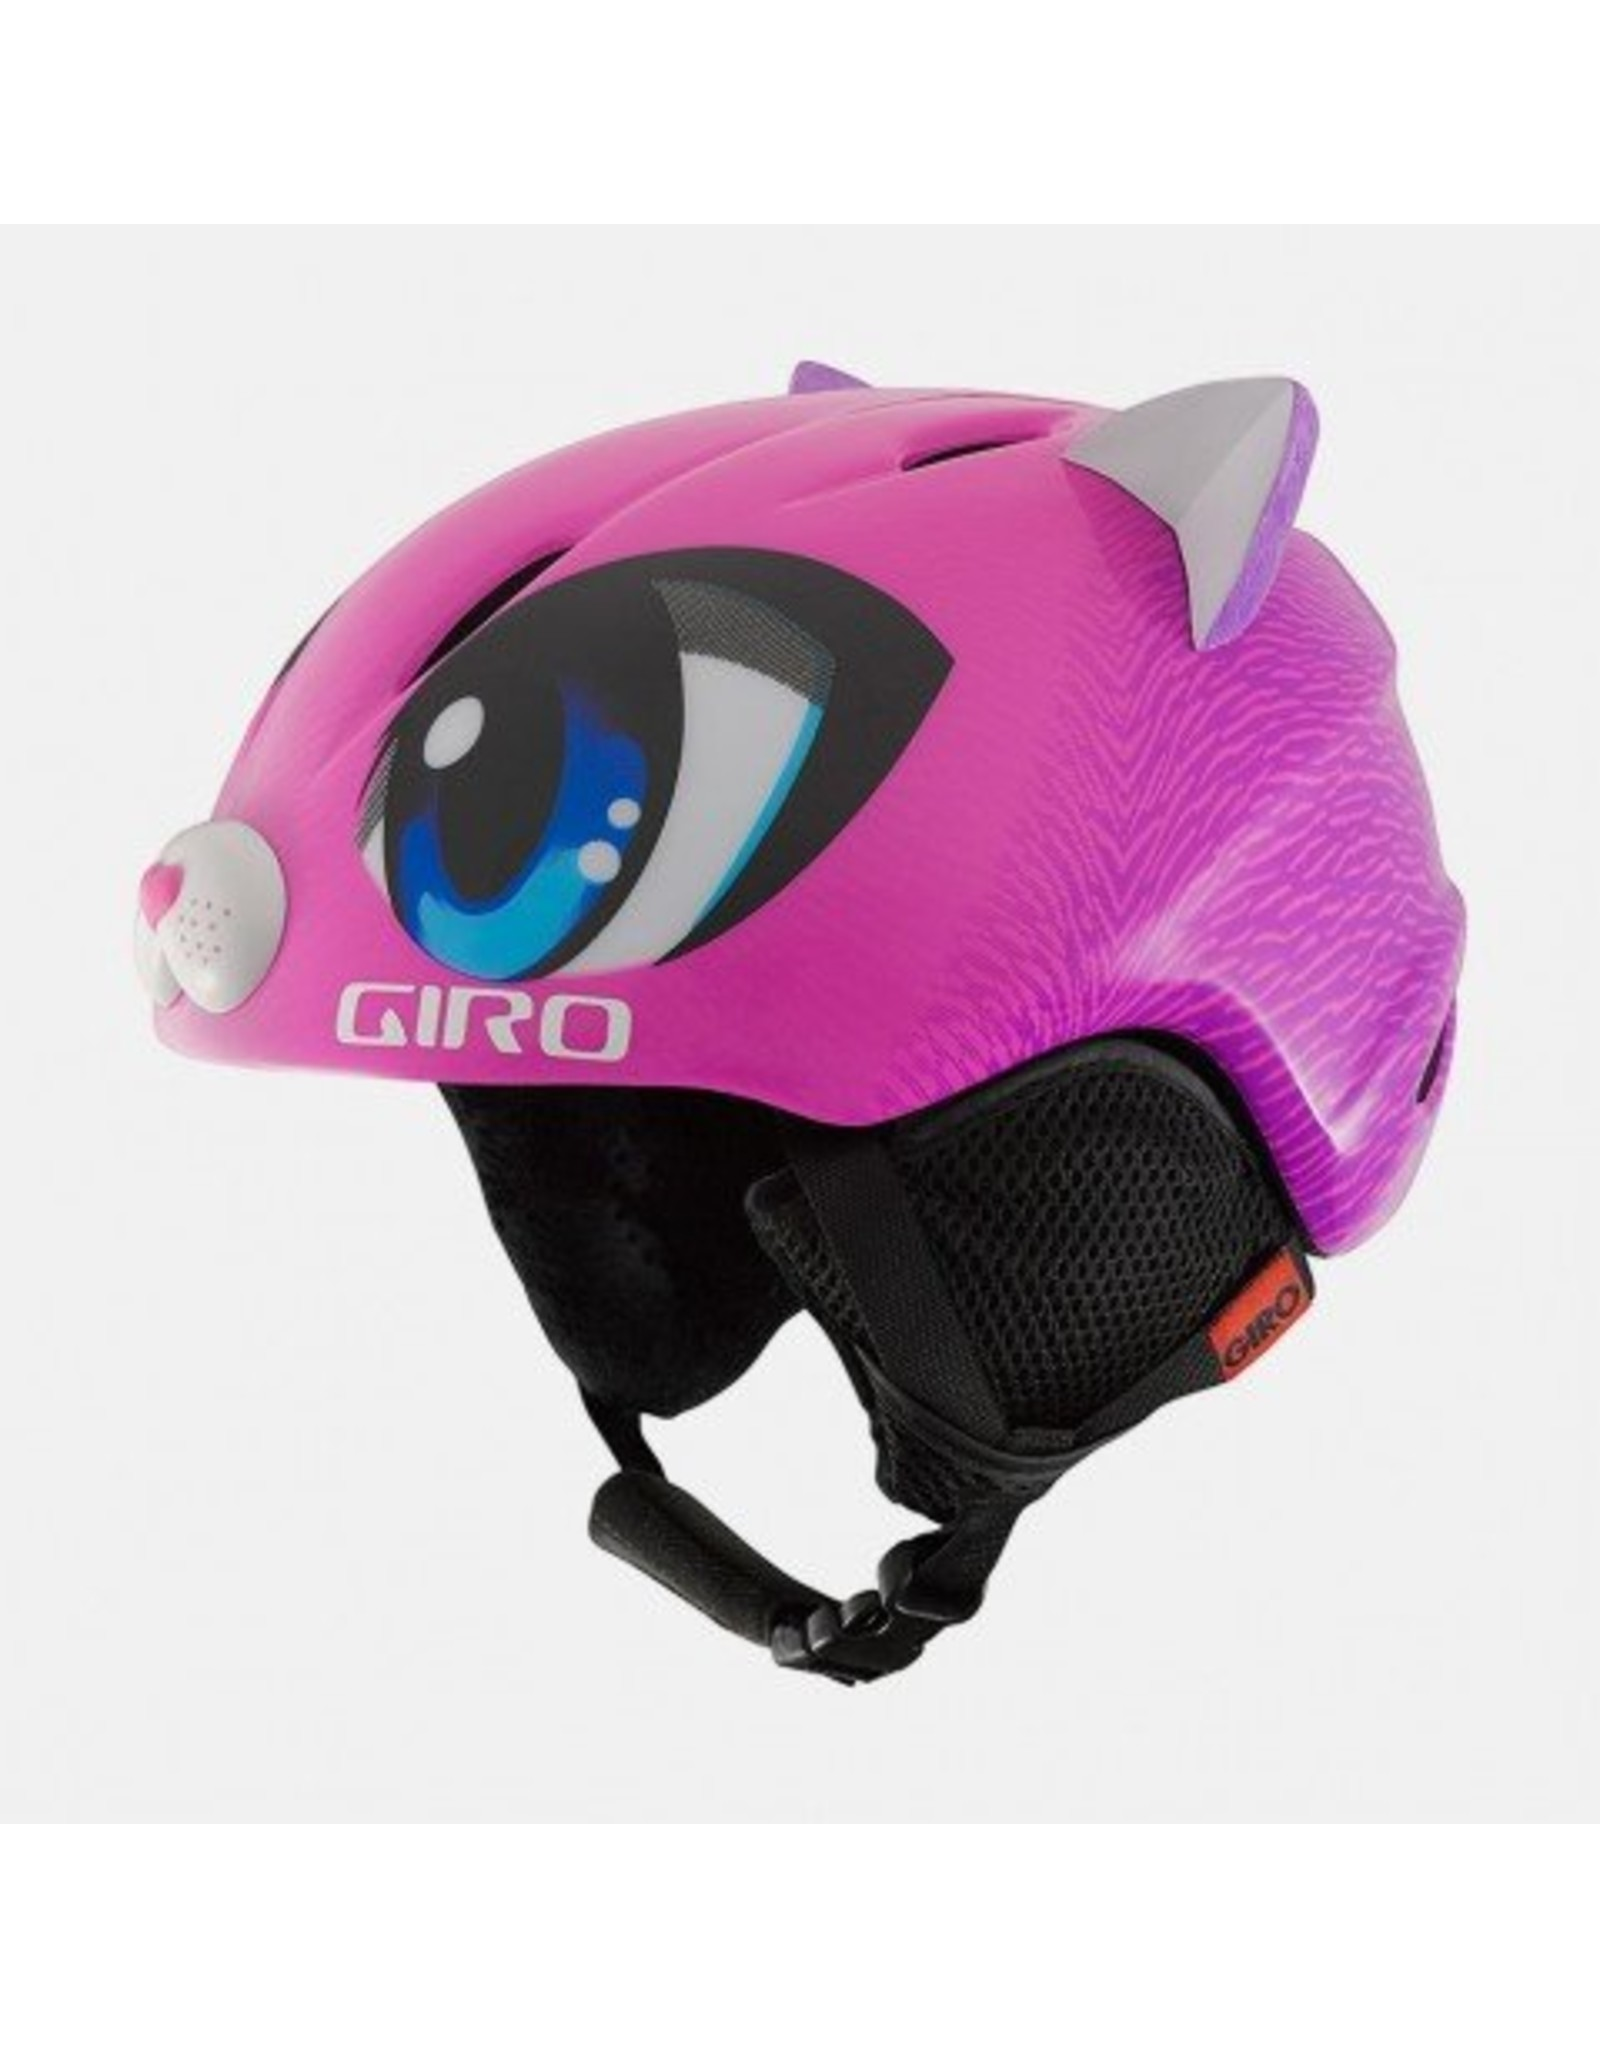 Giro Giro Launch Plus Helmet